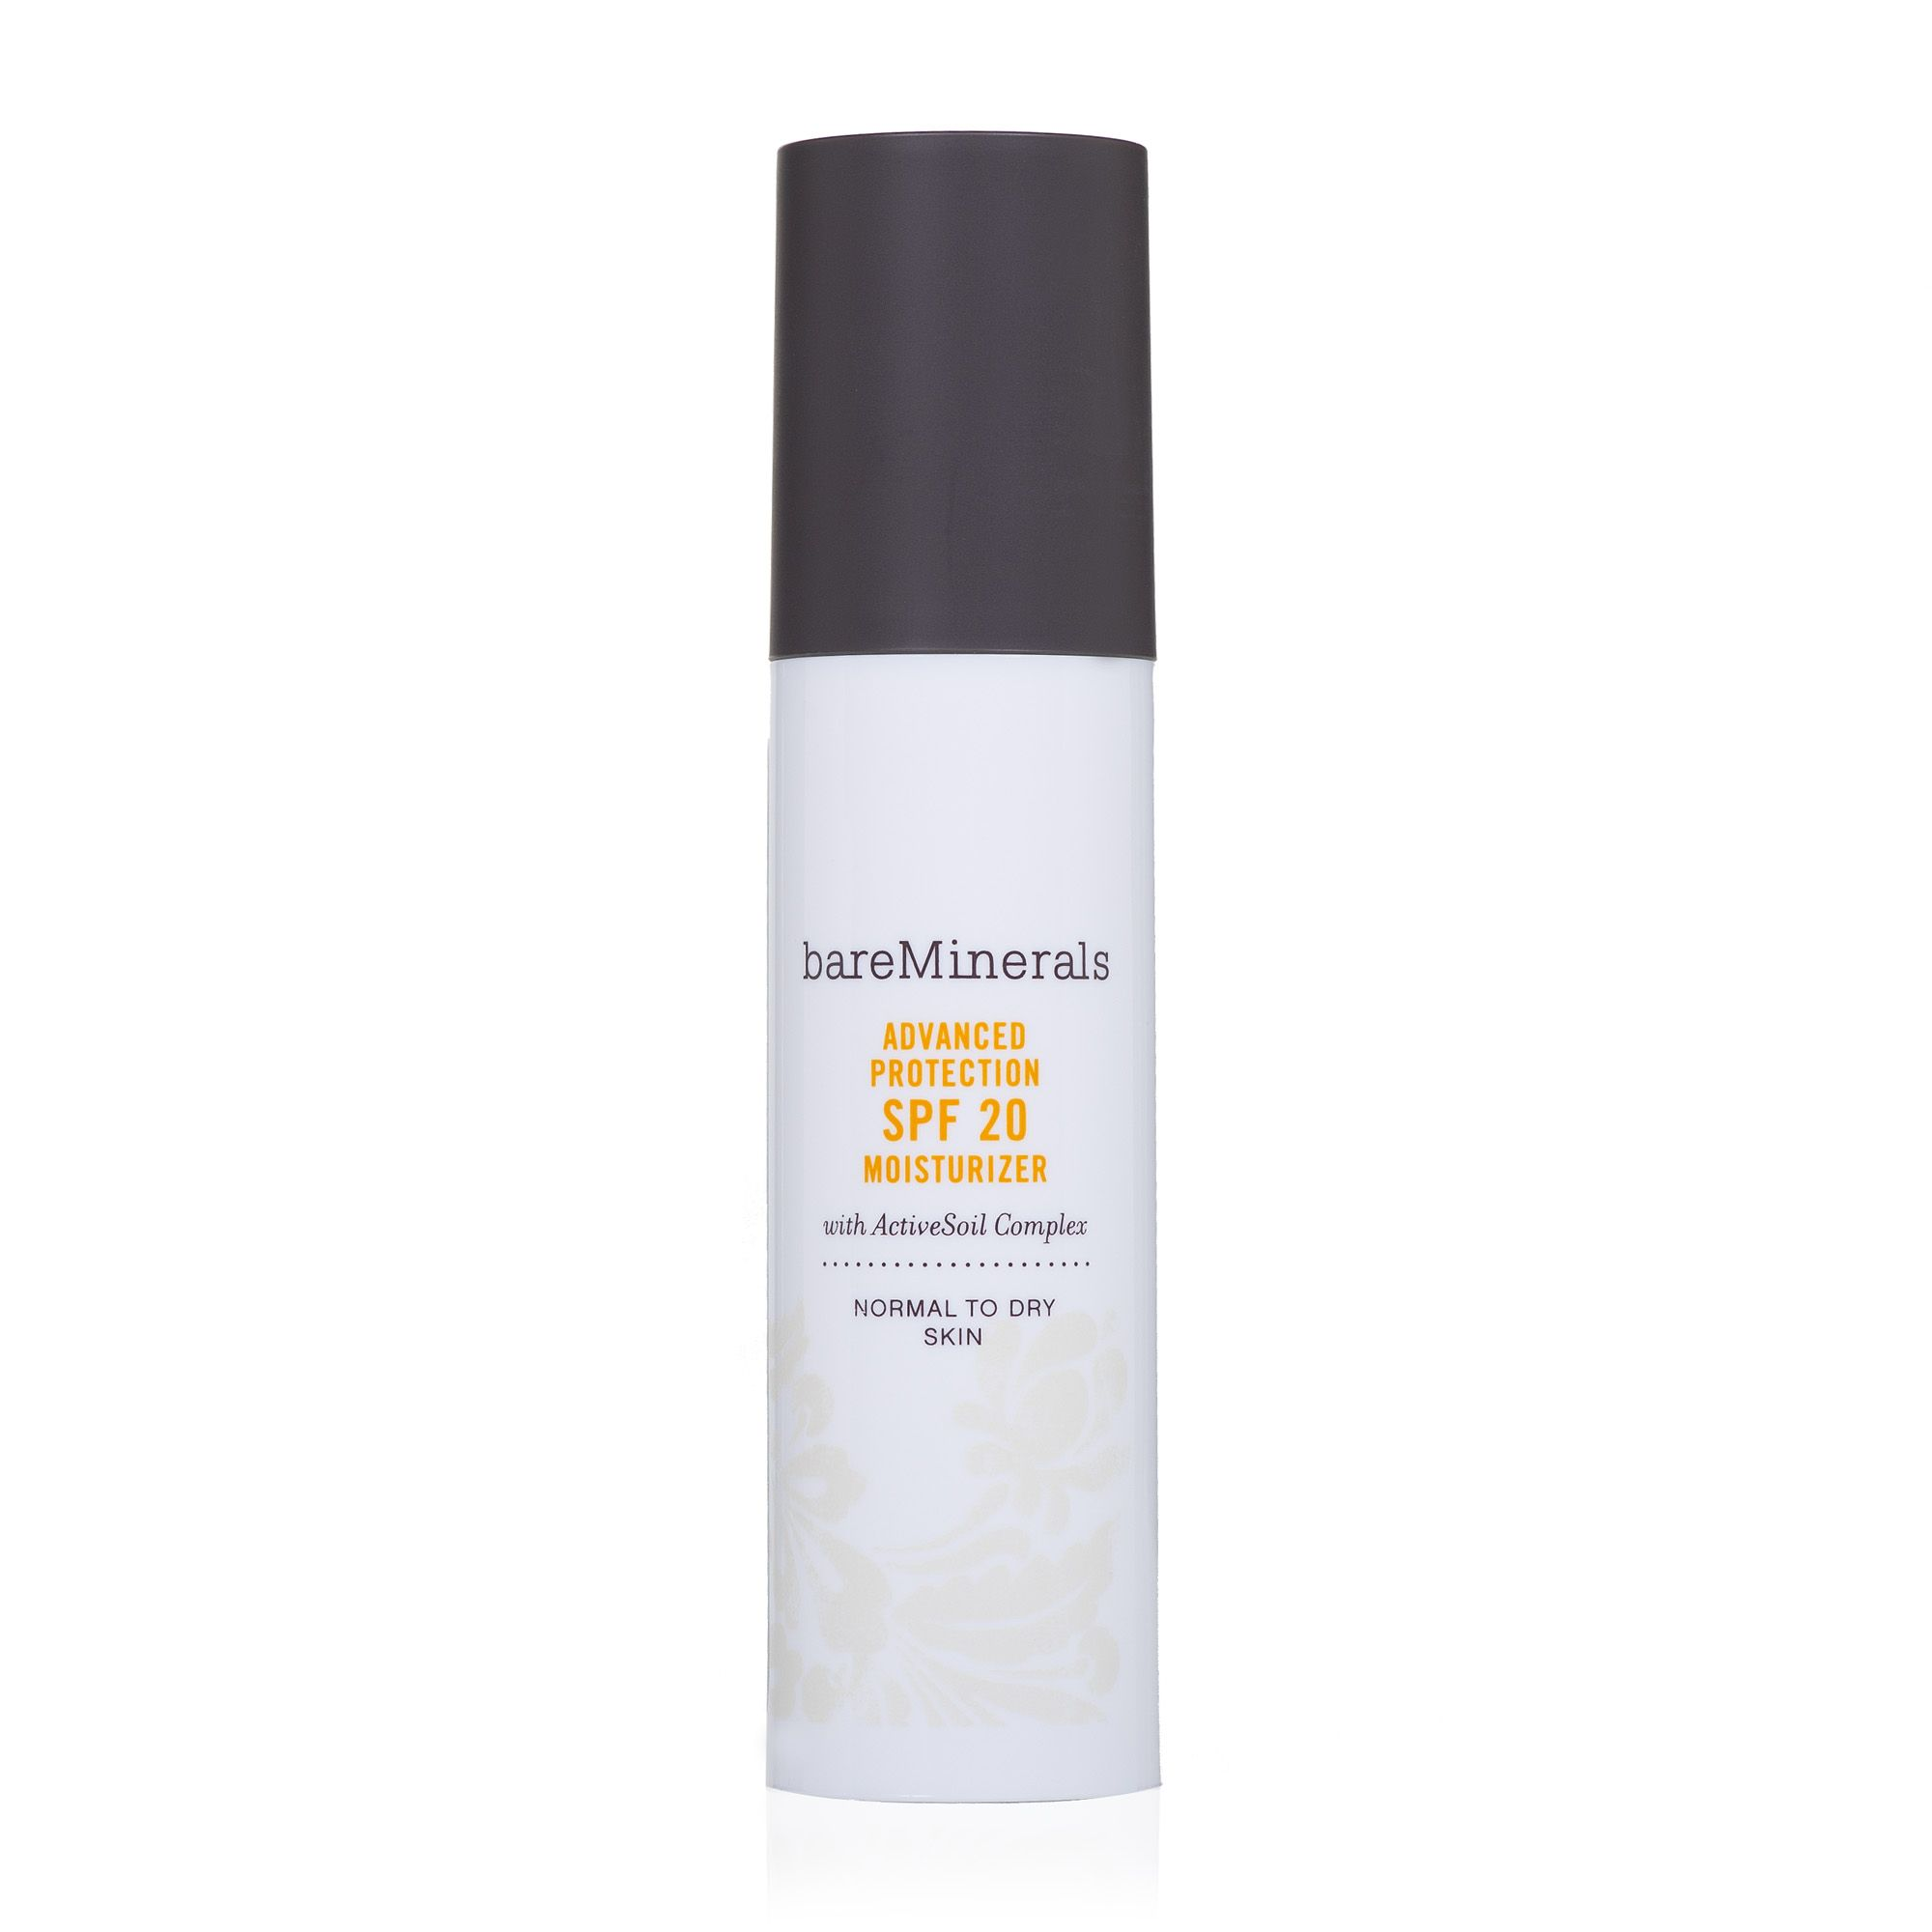 bareMinerals Advanced Protection crema idratante vellutata con SPF 20